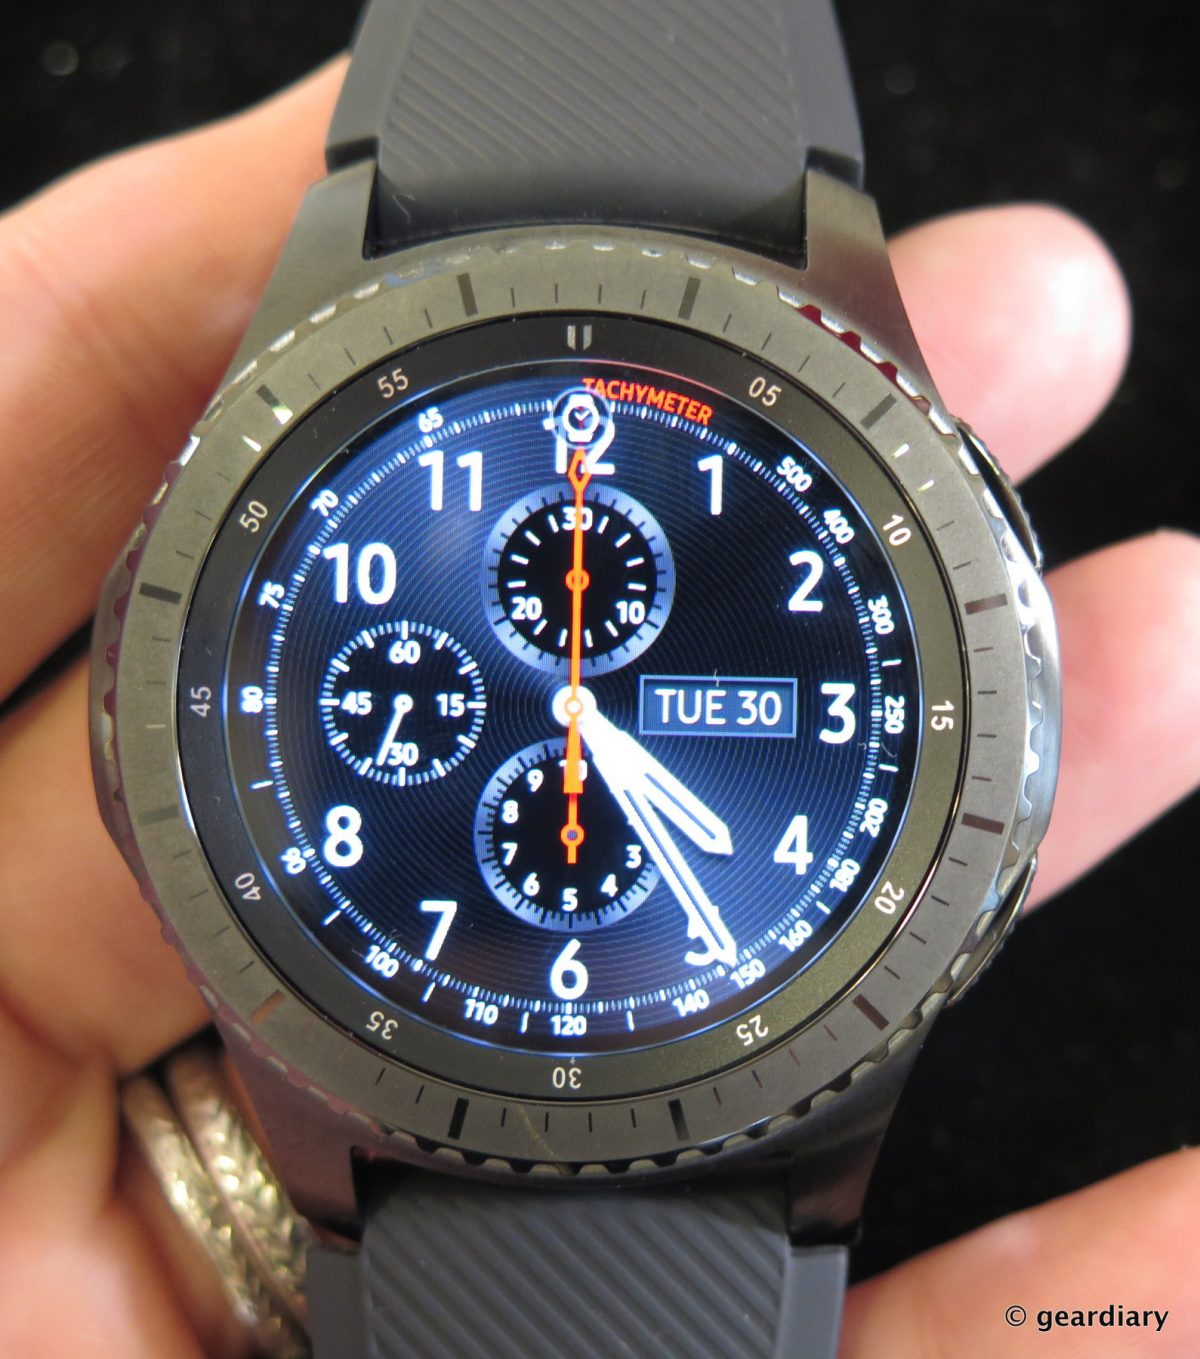 Watches Mobile Phones & Gear IFA Android Gear